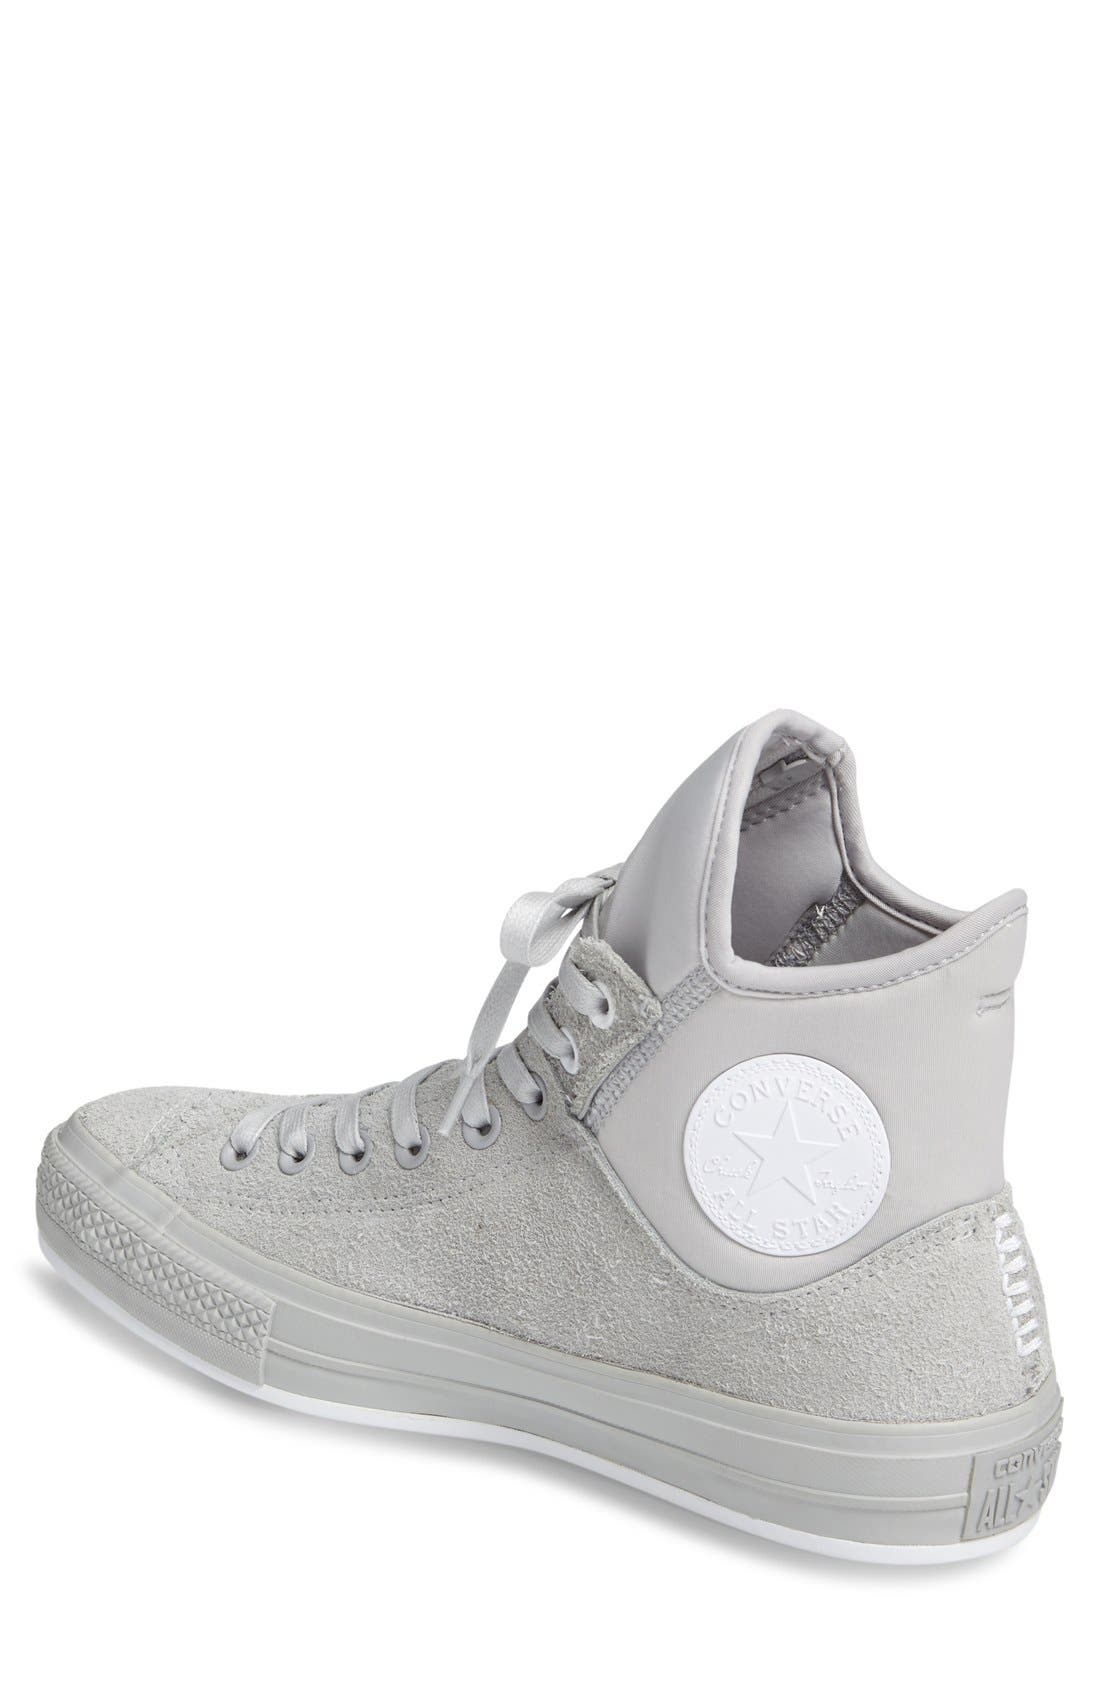 Chuck Taylor<sup>®</sup> All Star<sup>®</sup> MA-1 SE High Top Sneaker,                             Alternate thumbnail 2, color,                             095